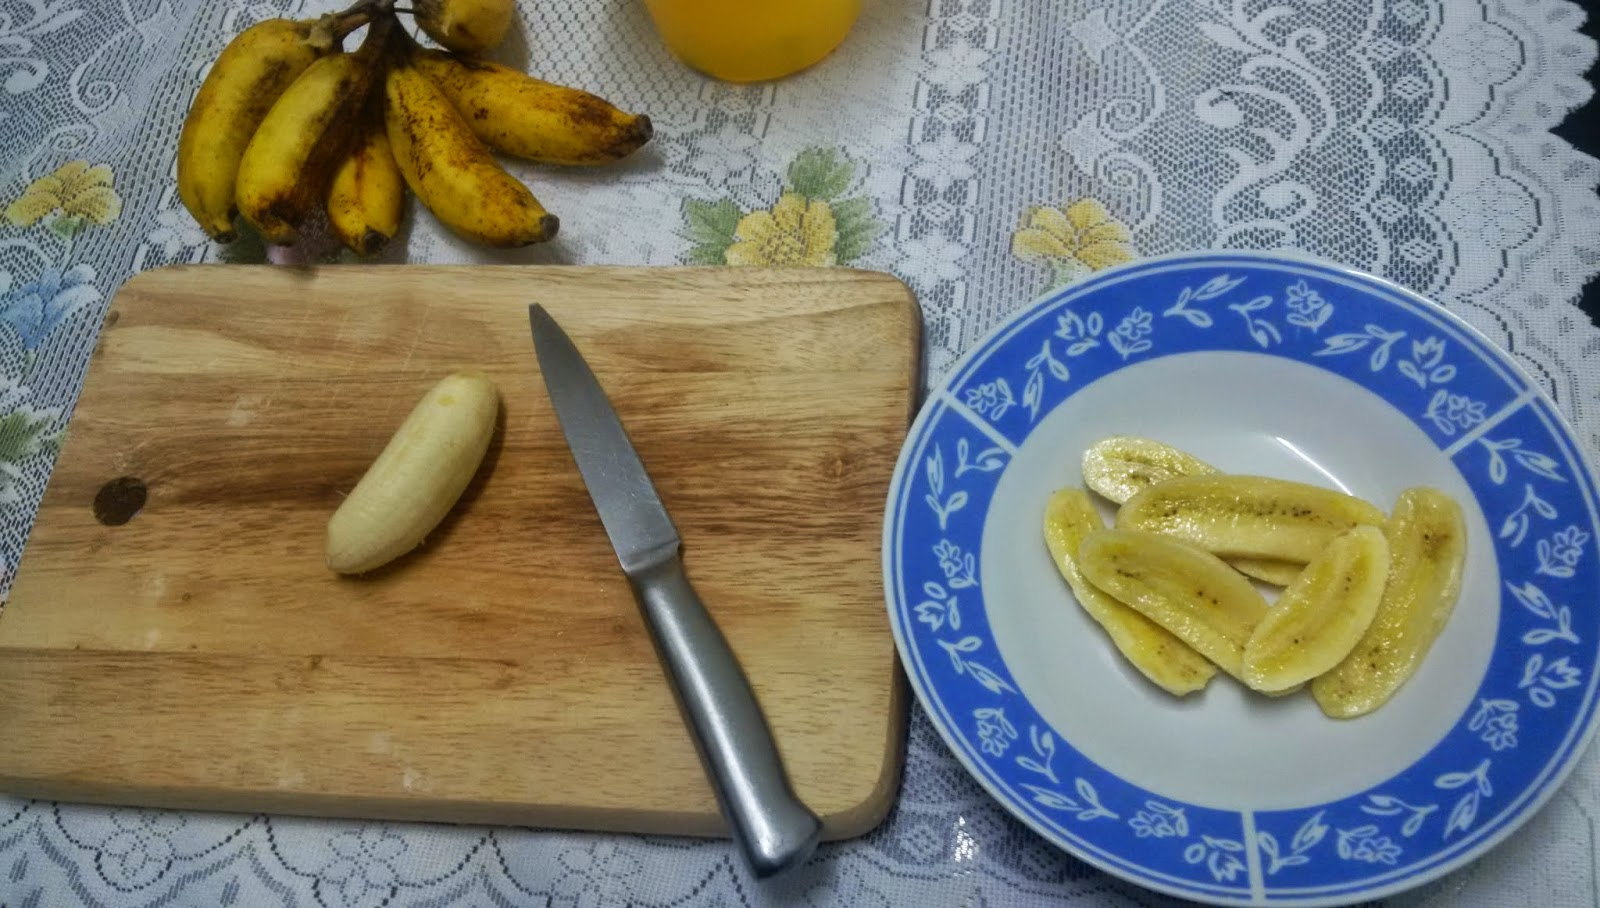 banana fitters, food, goreng pisang, goreng pisang chesse, goreng pisang chocolate, malaysian snack, step by step how to make banana fry,